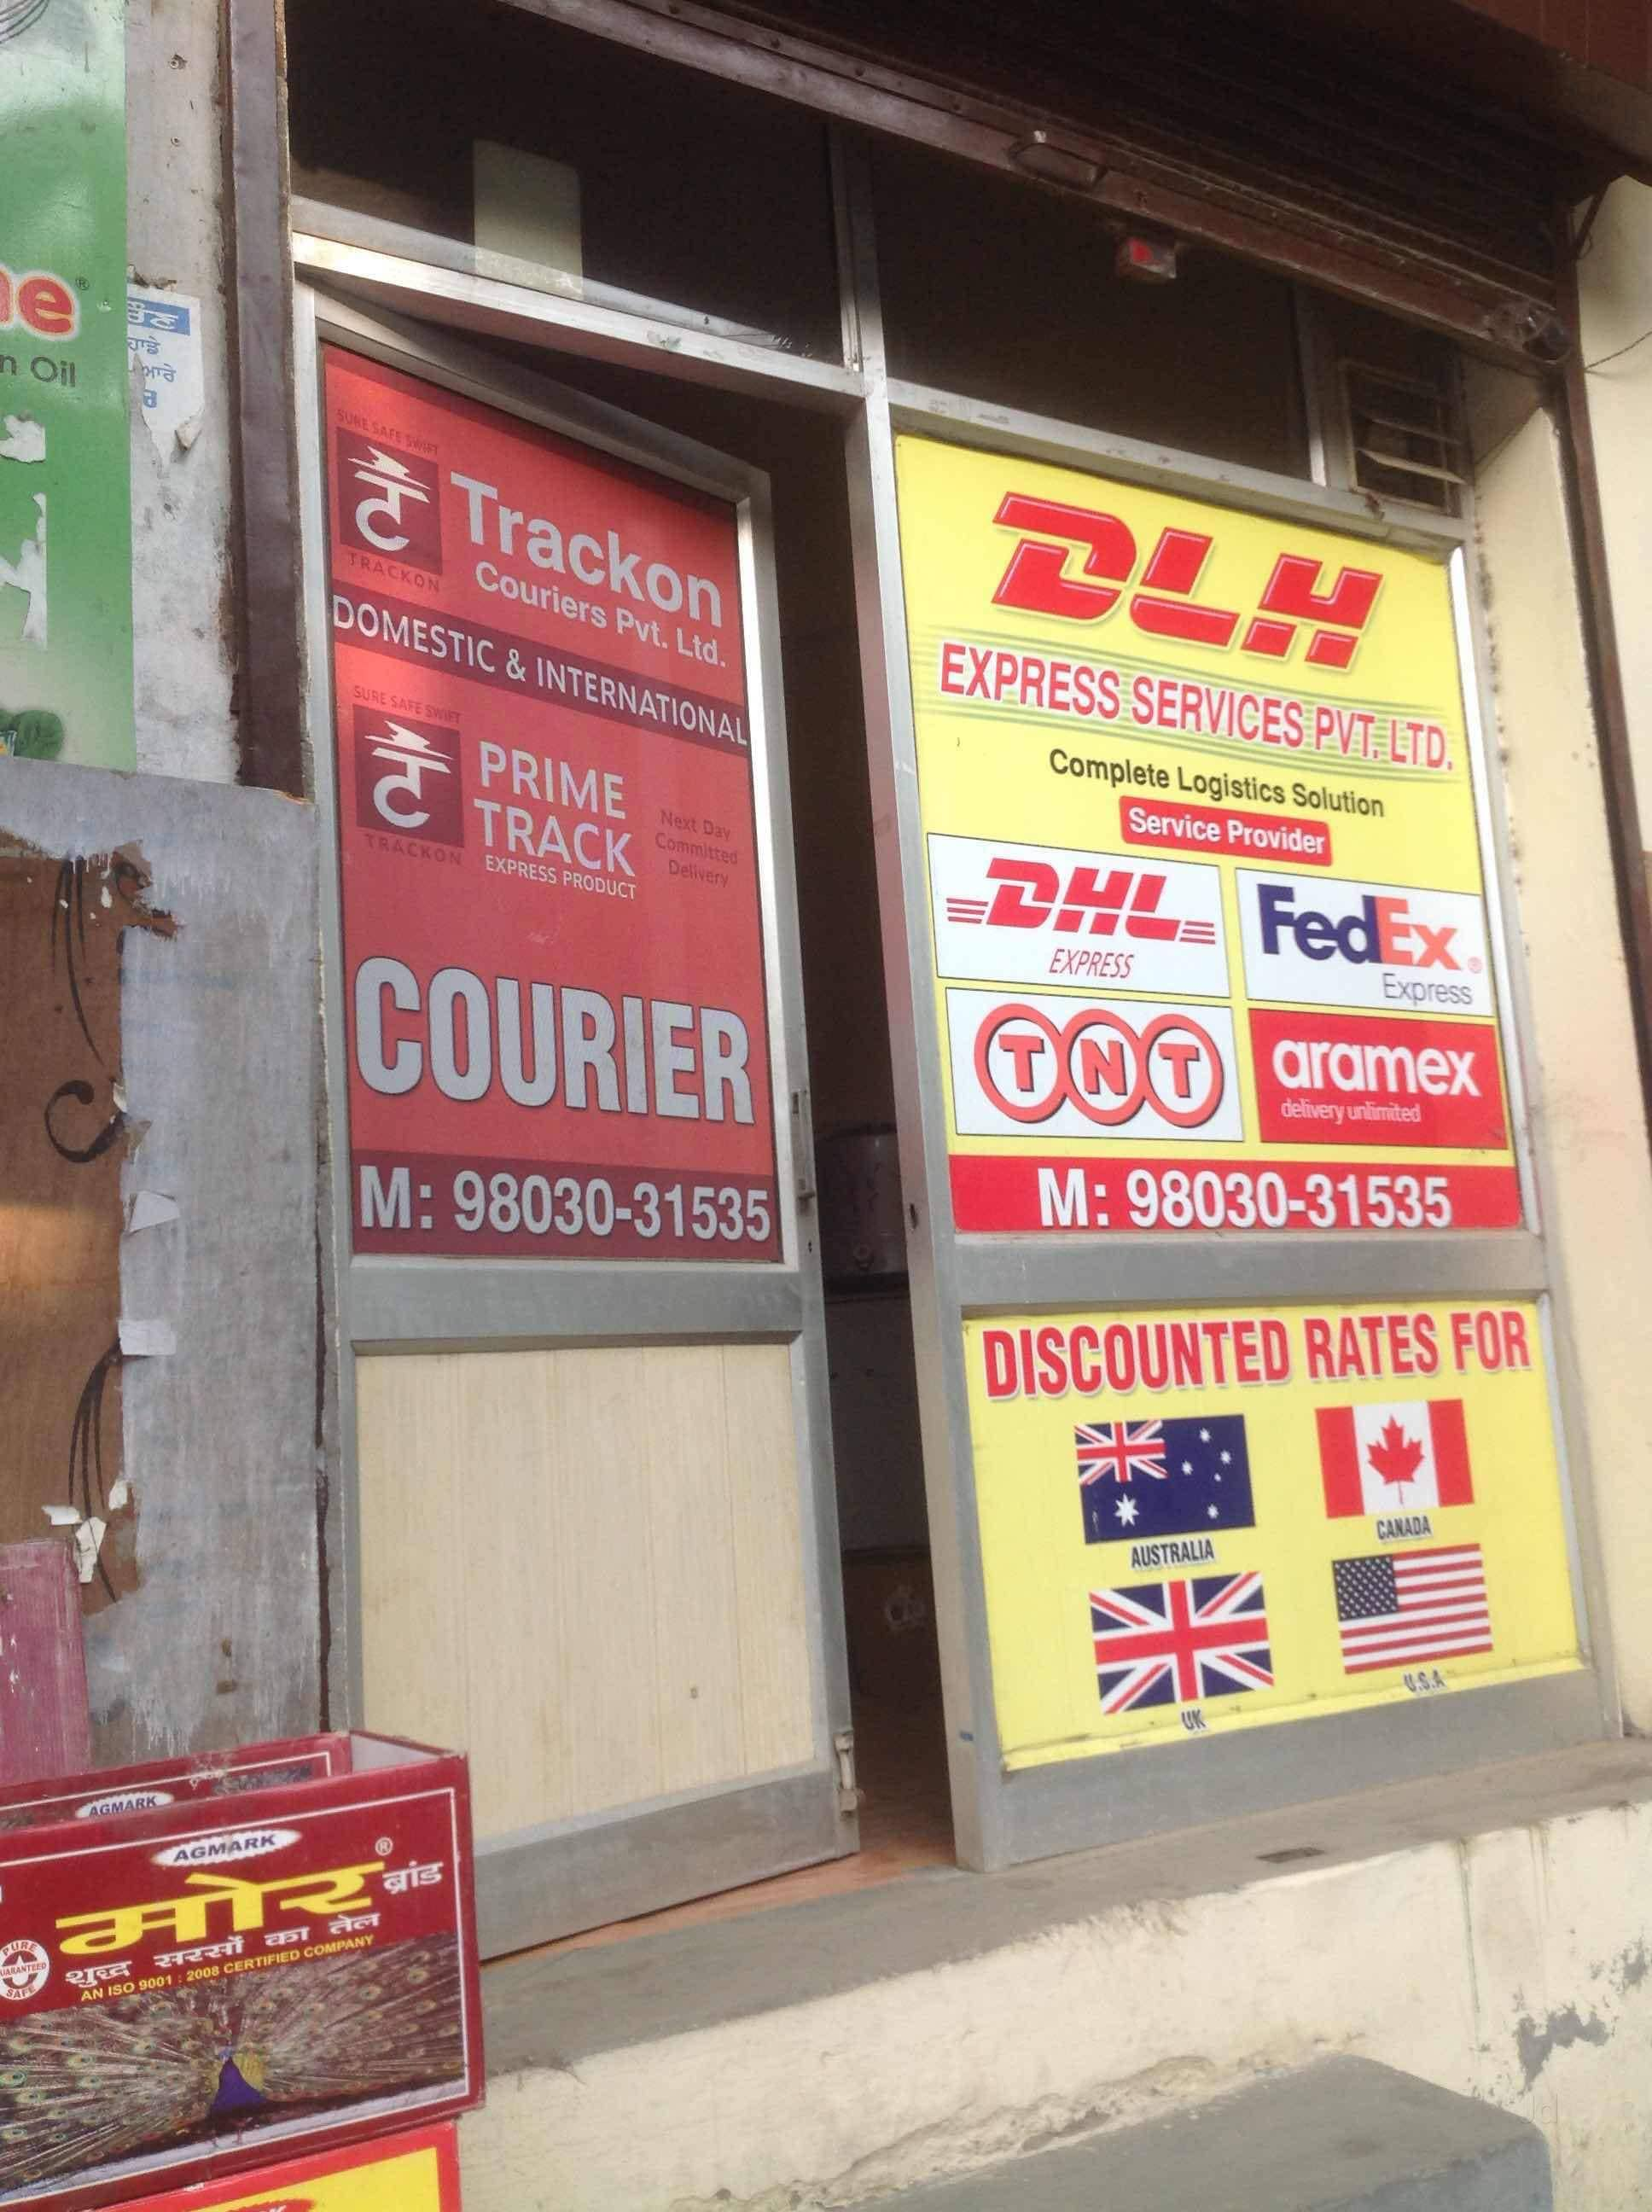 Top Fedex Courier Services in Ludhiana - Best Fedex Courier